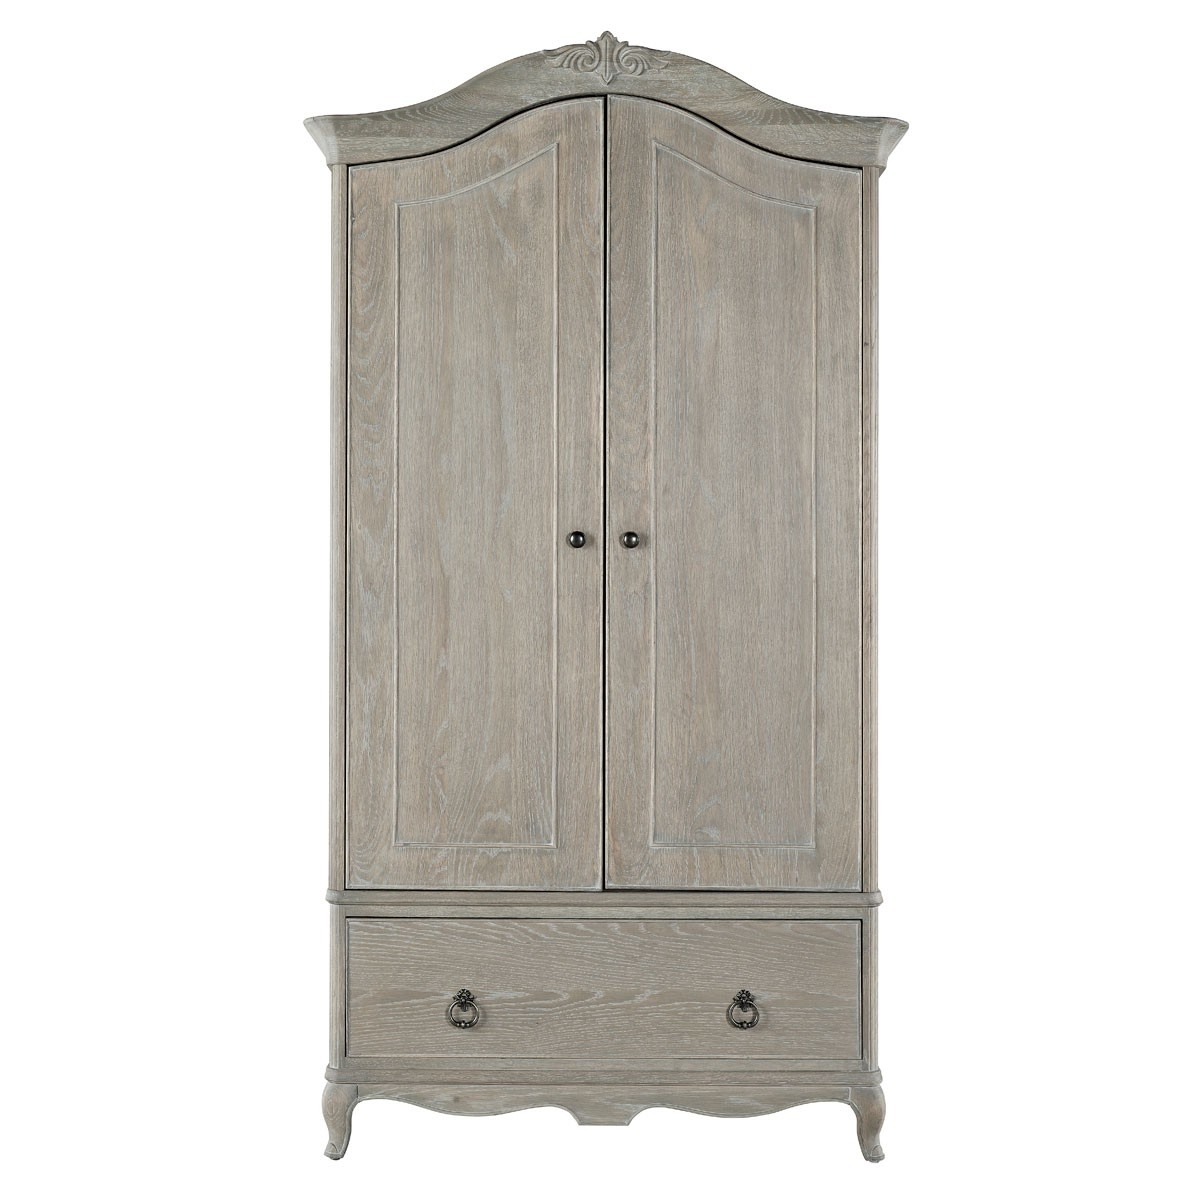 Widely Used Camille French Style Double Wardrobe, Washed Oak (View 15 of 15)